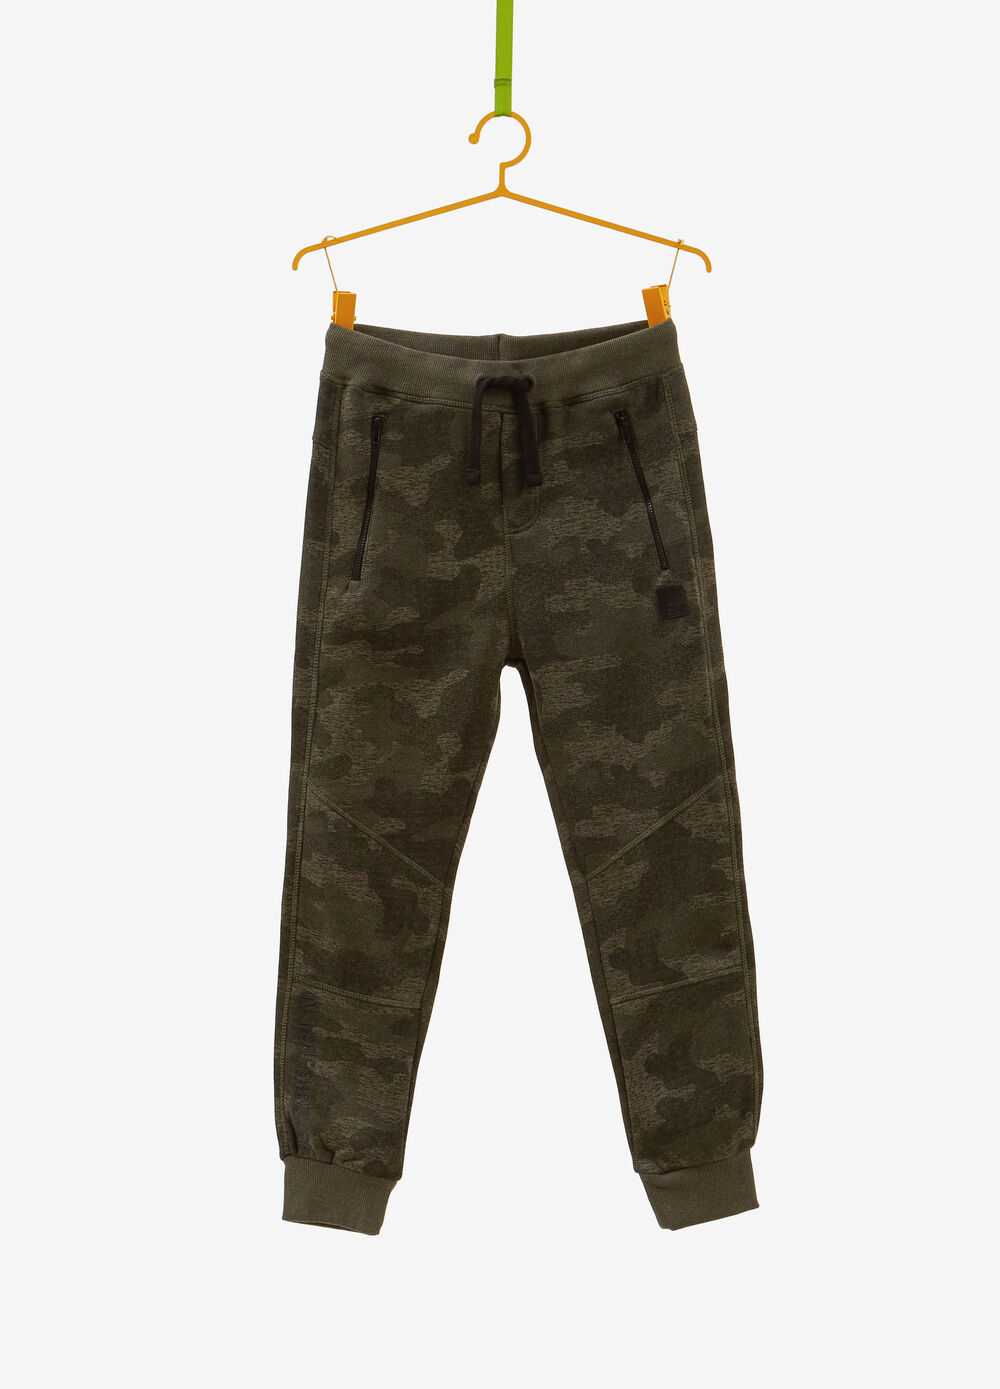 100% cotton trousers with pockets and zip